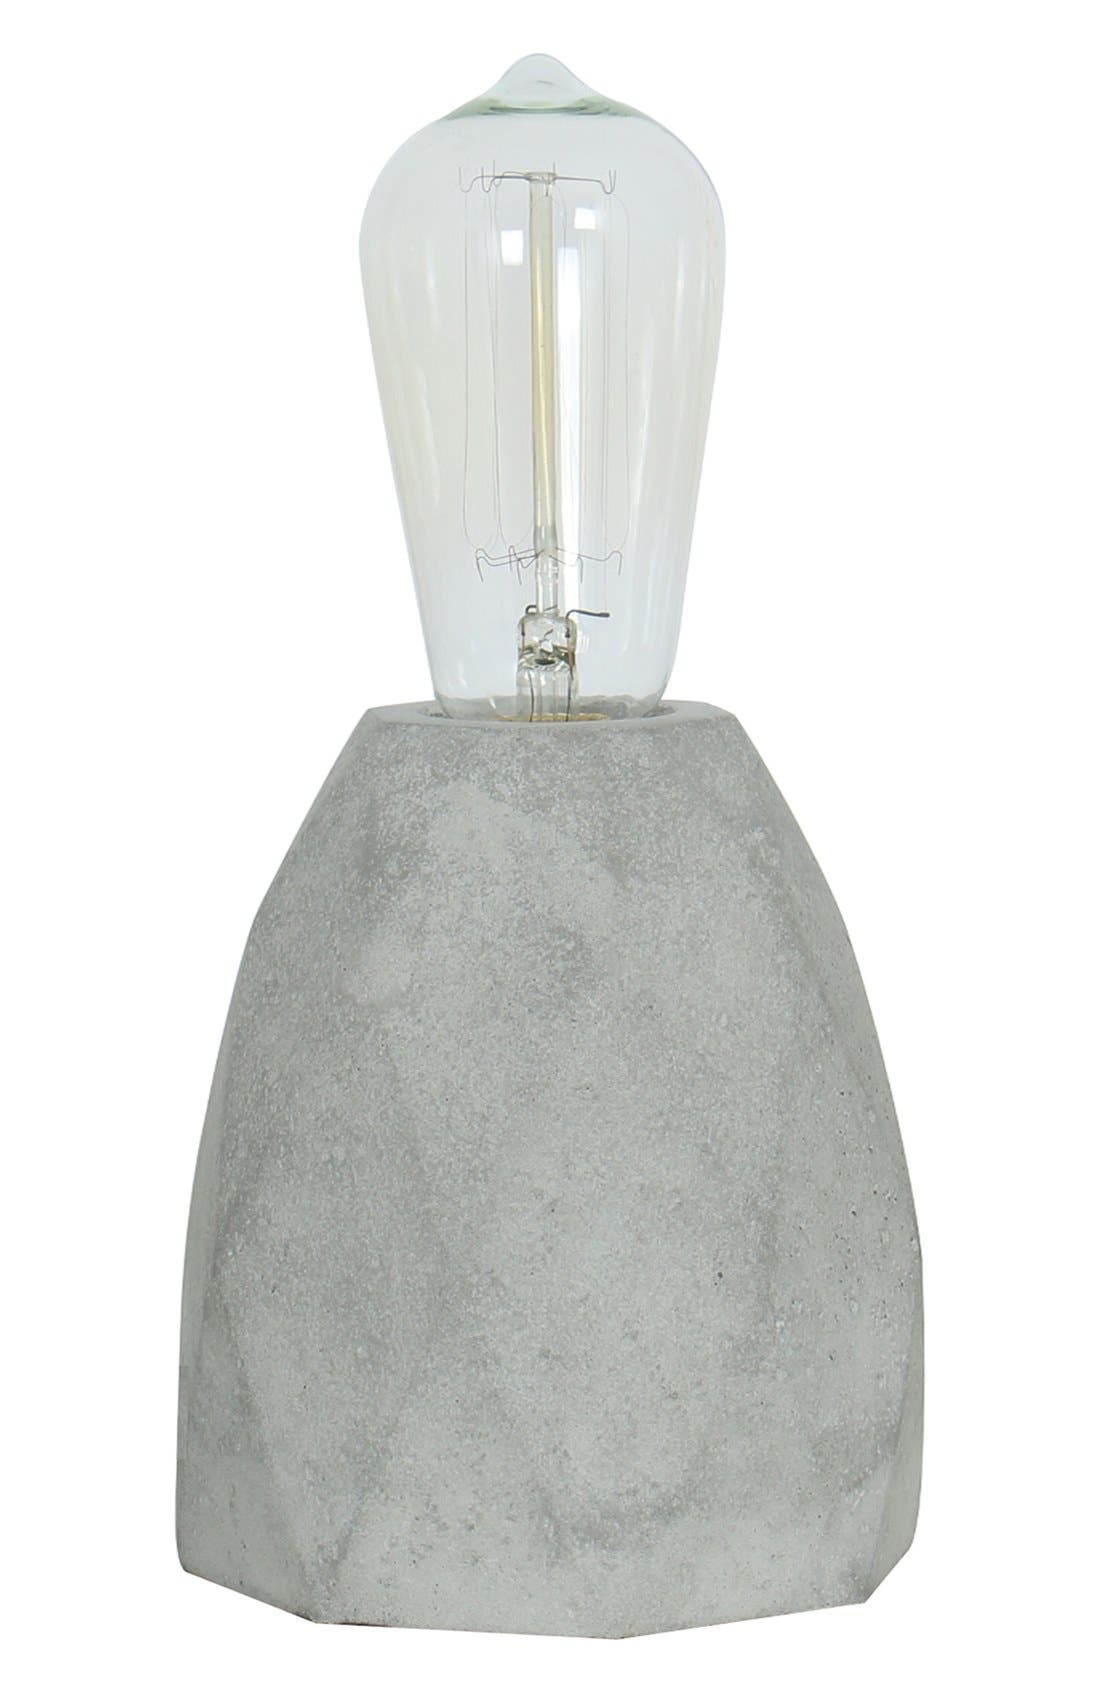 Alternate Image 1 Selected - Crystal Art Gallery Cement Table Lamp